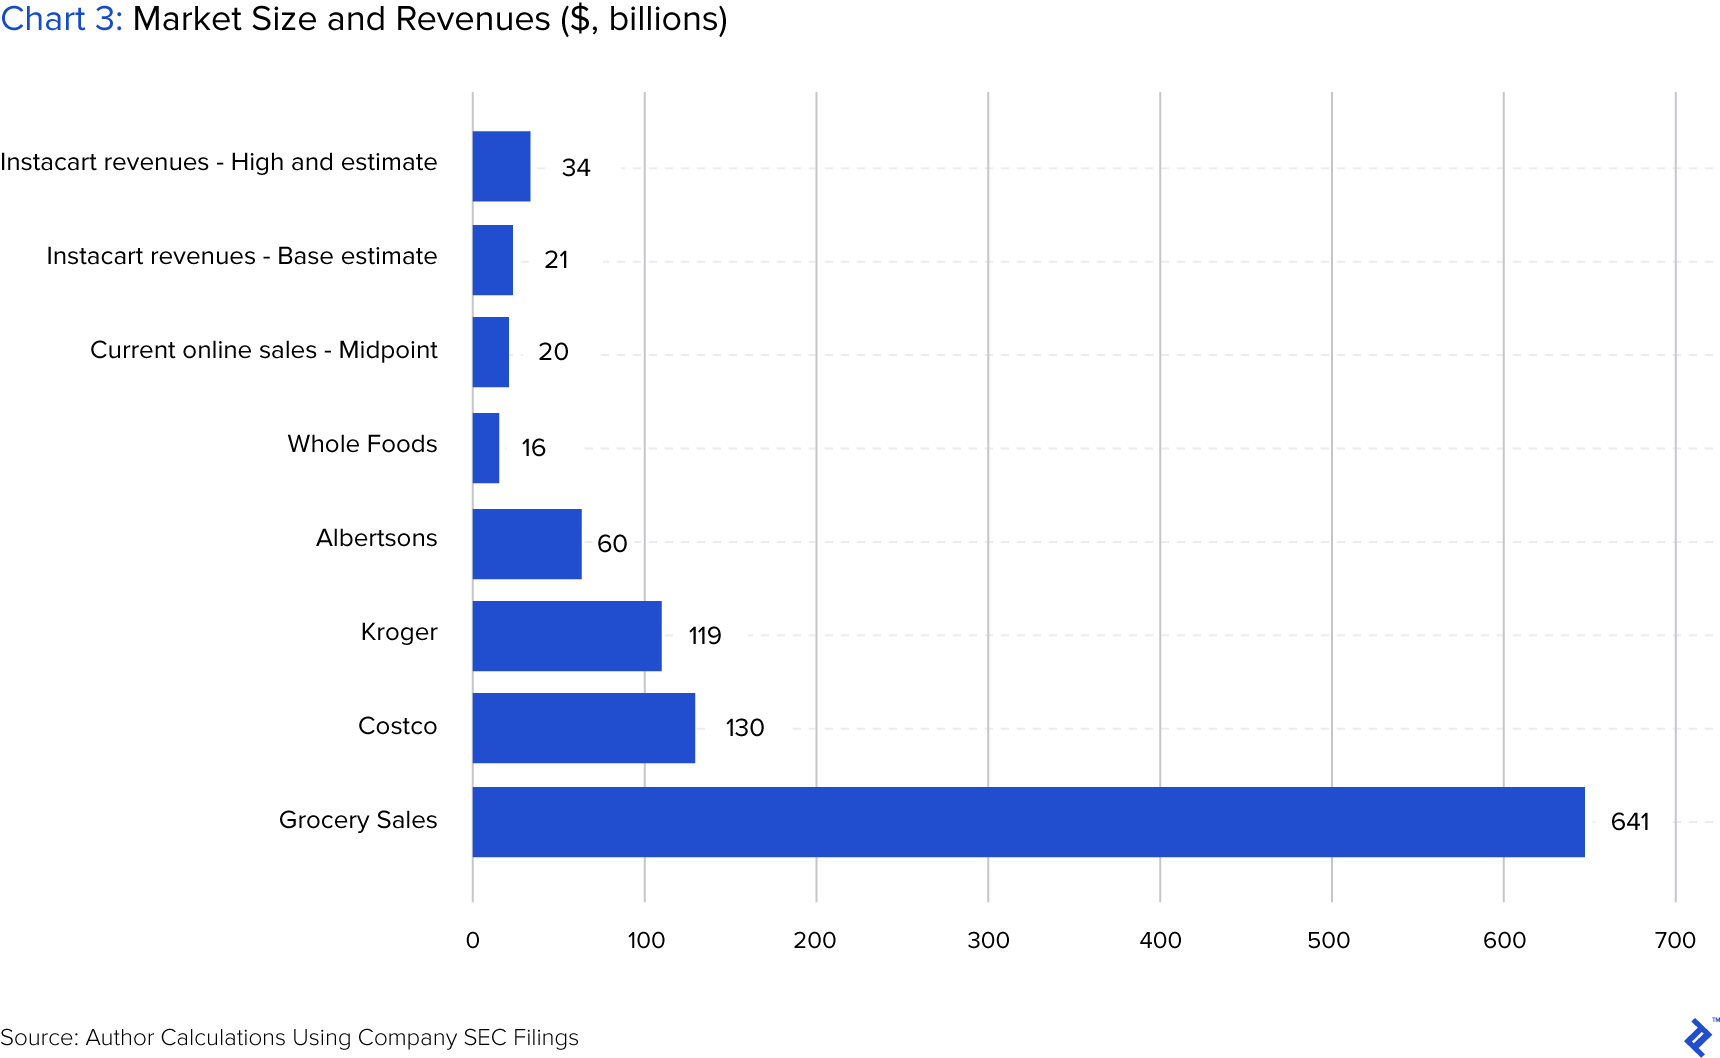 chart showing market size in revenues in billions of dollars